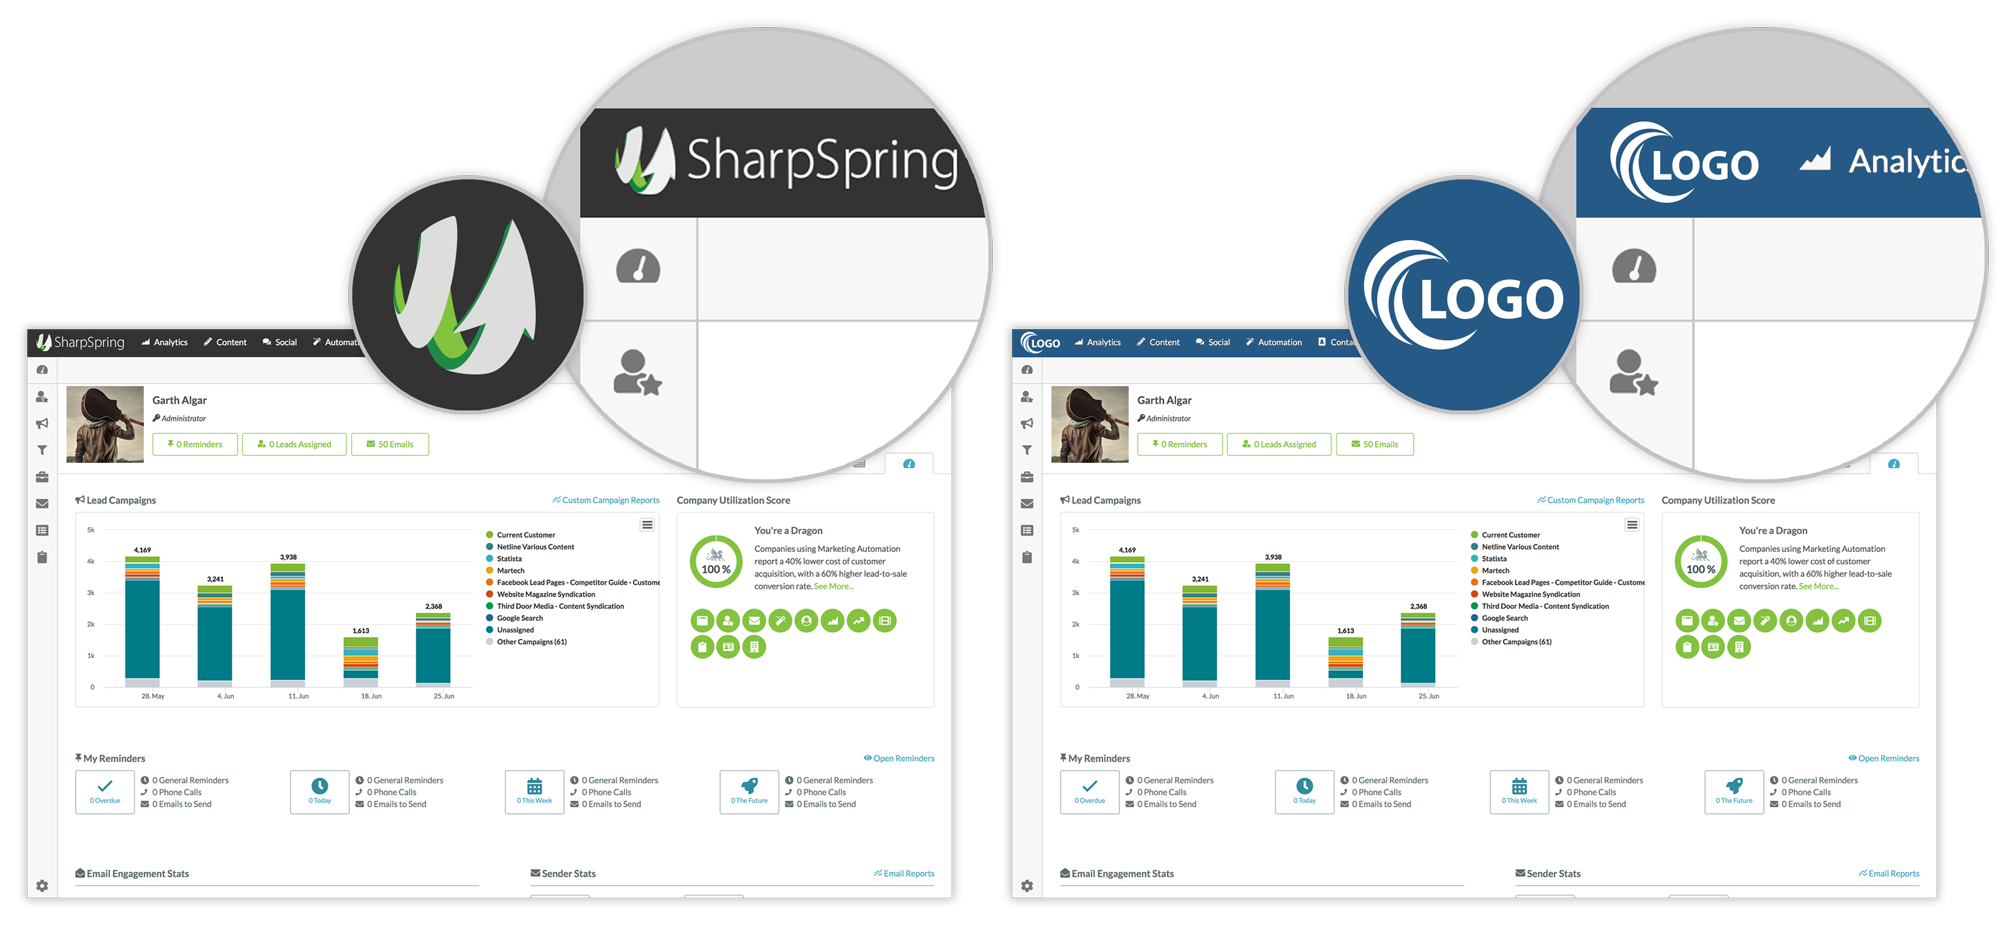 SharpSpring rebrandable interface